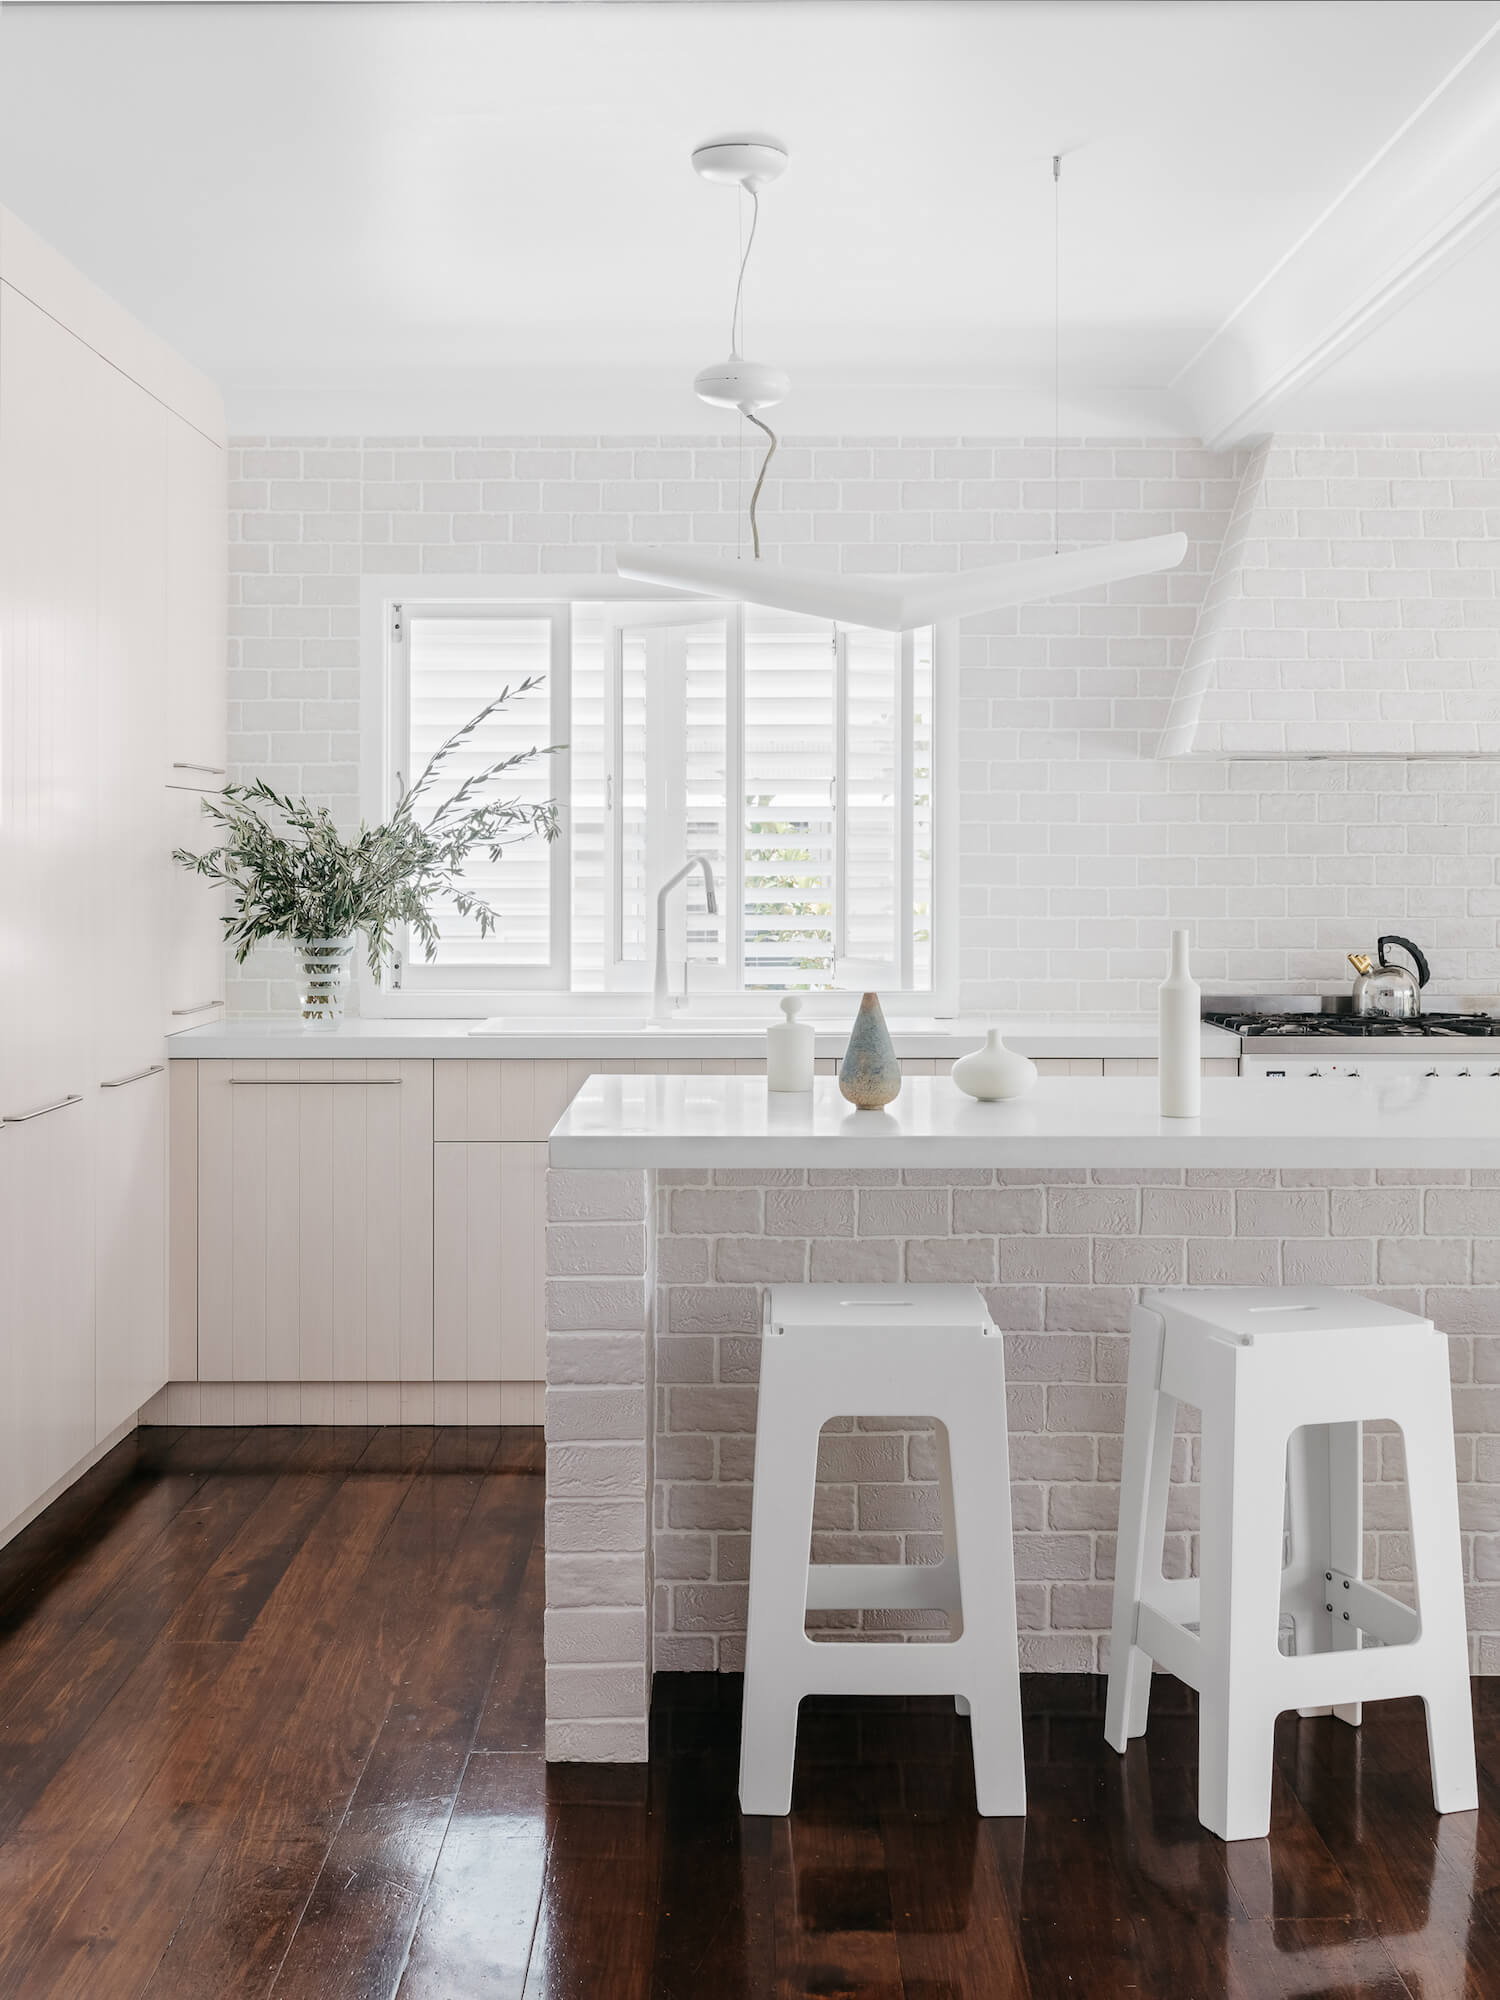 est living Banksia House AP Design House kitchen 5